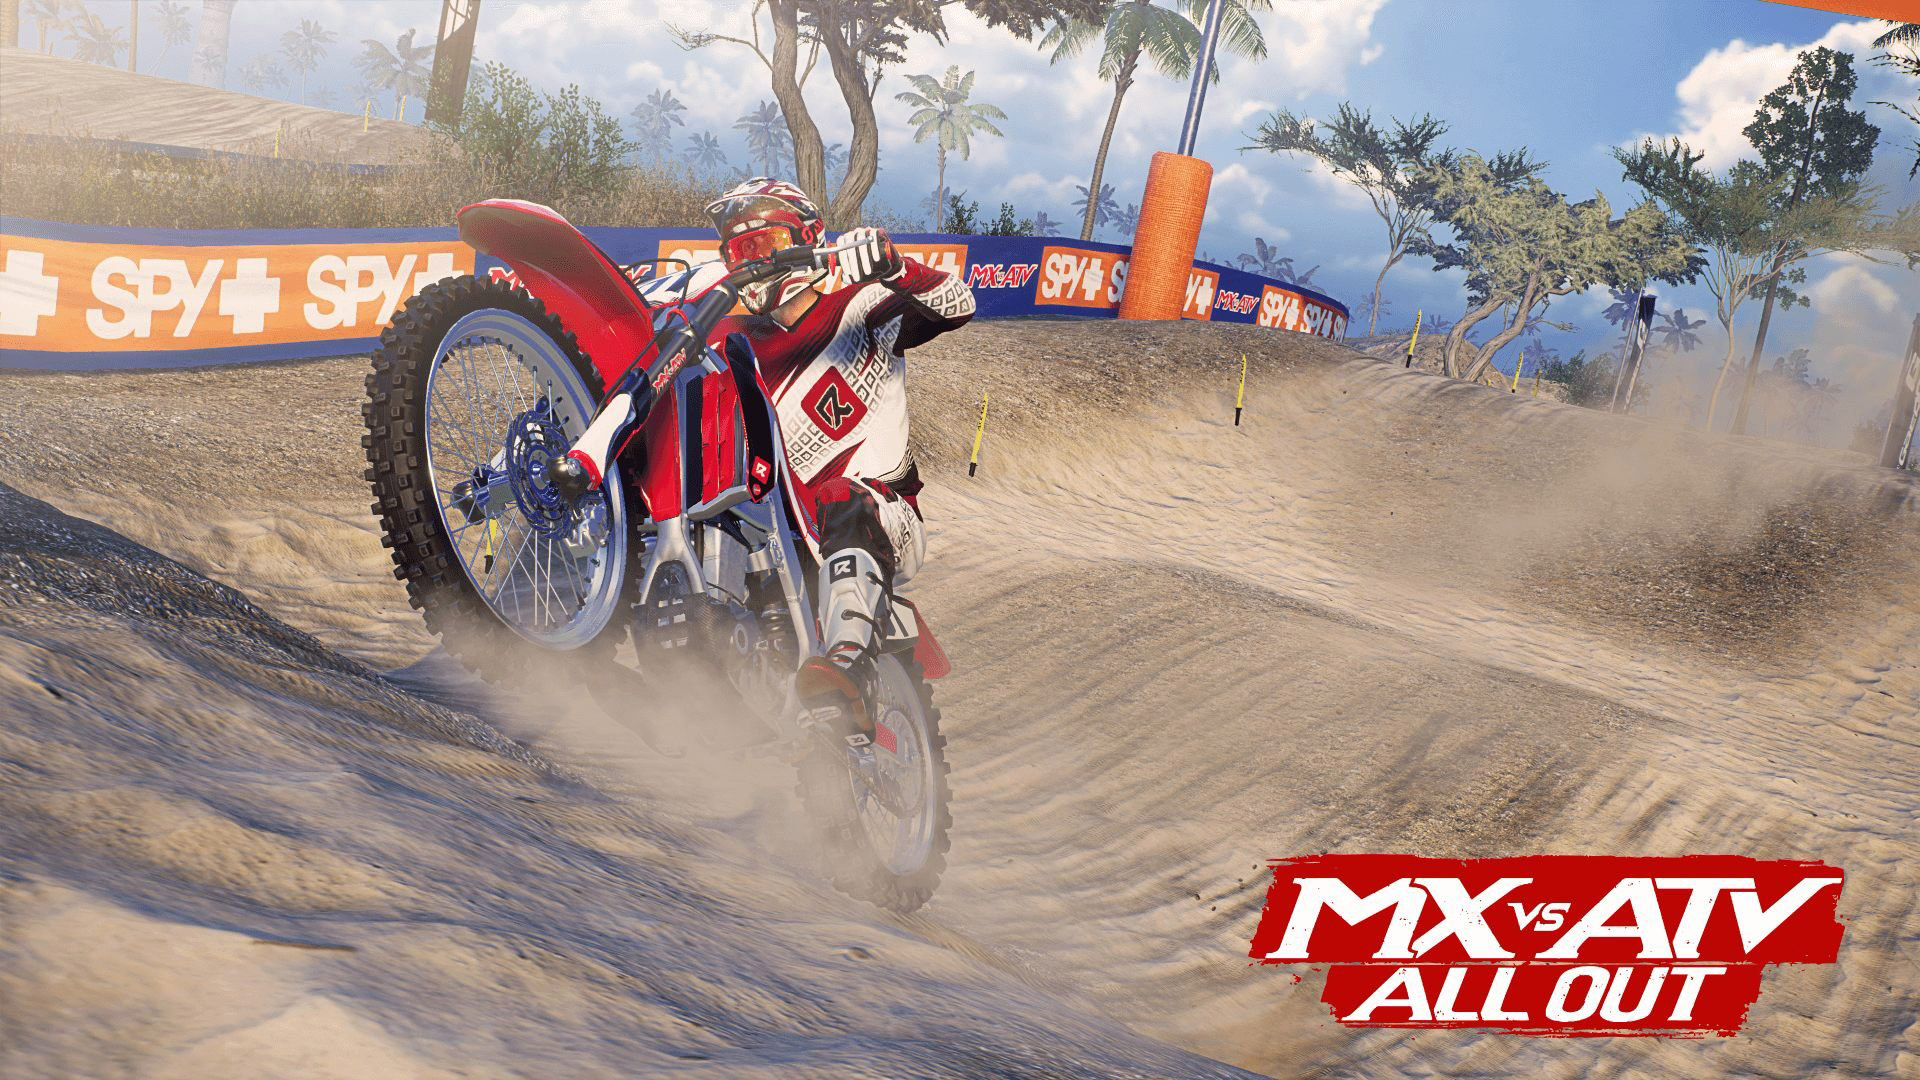 Free MX vs ATV All Out Wallpaper in 1920x1080